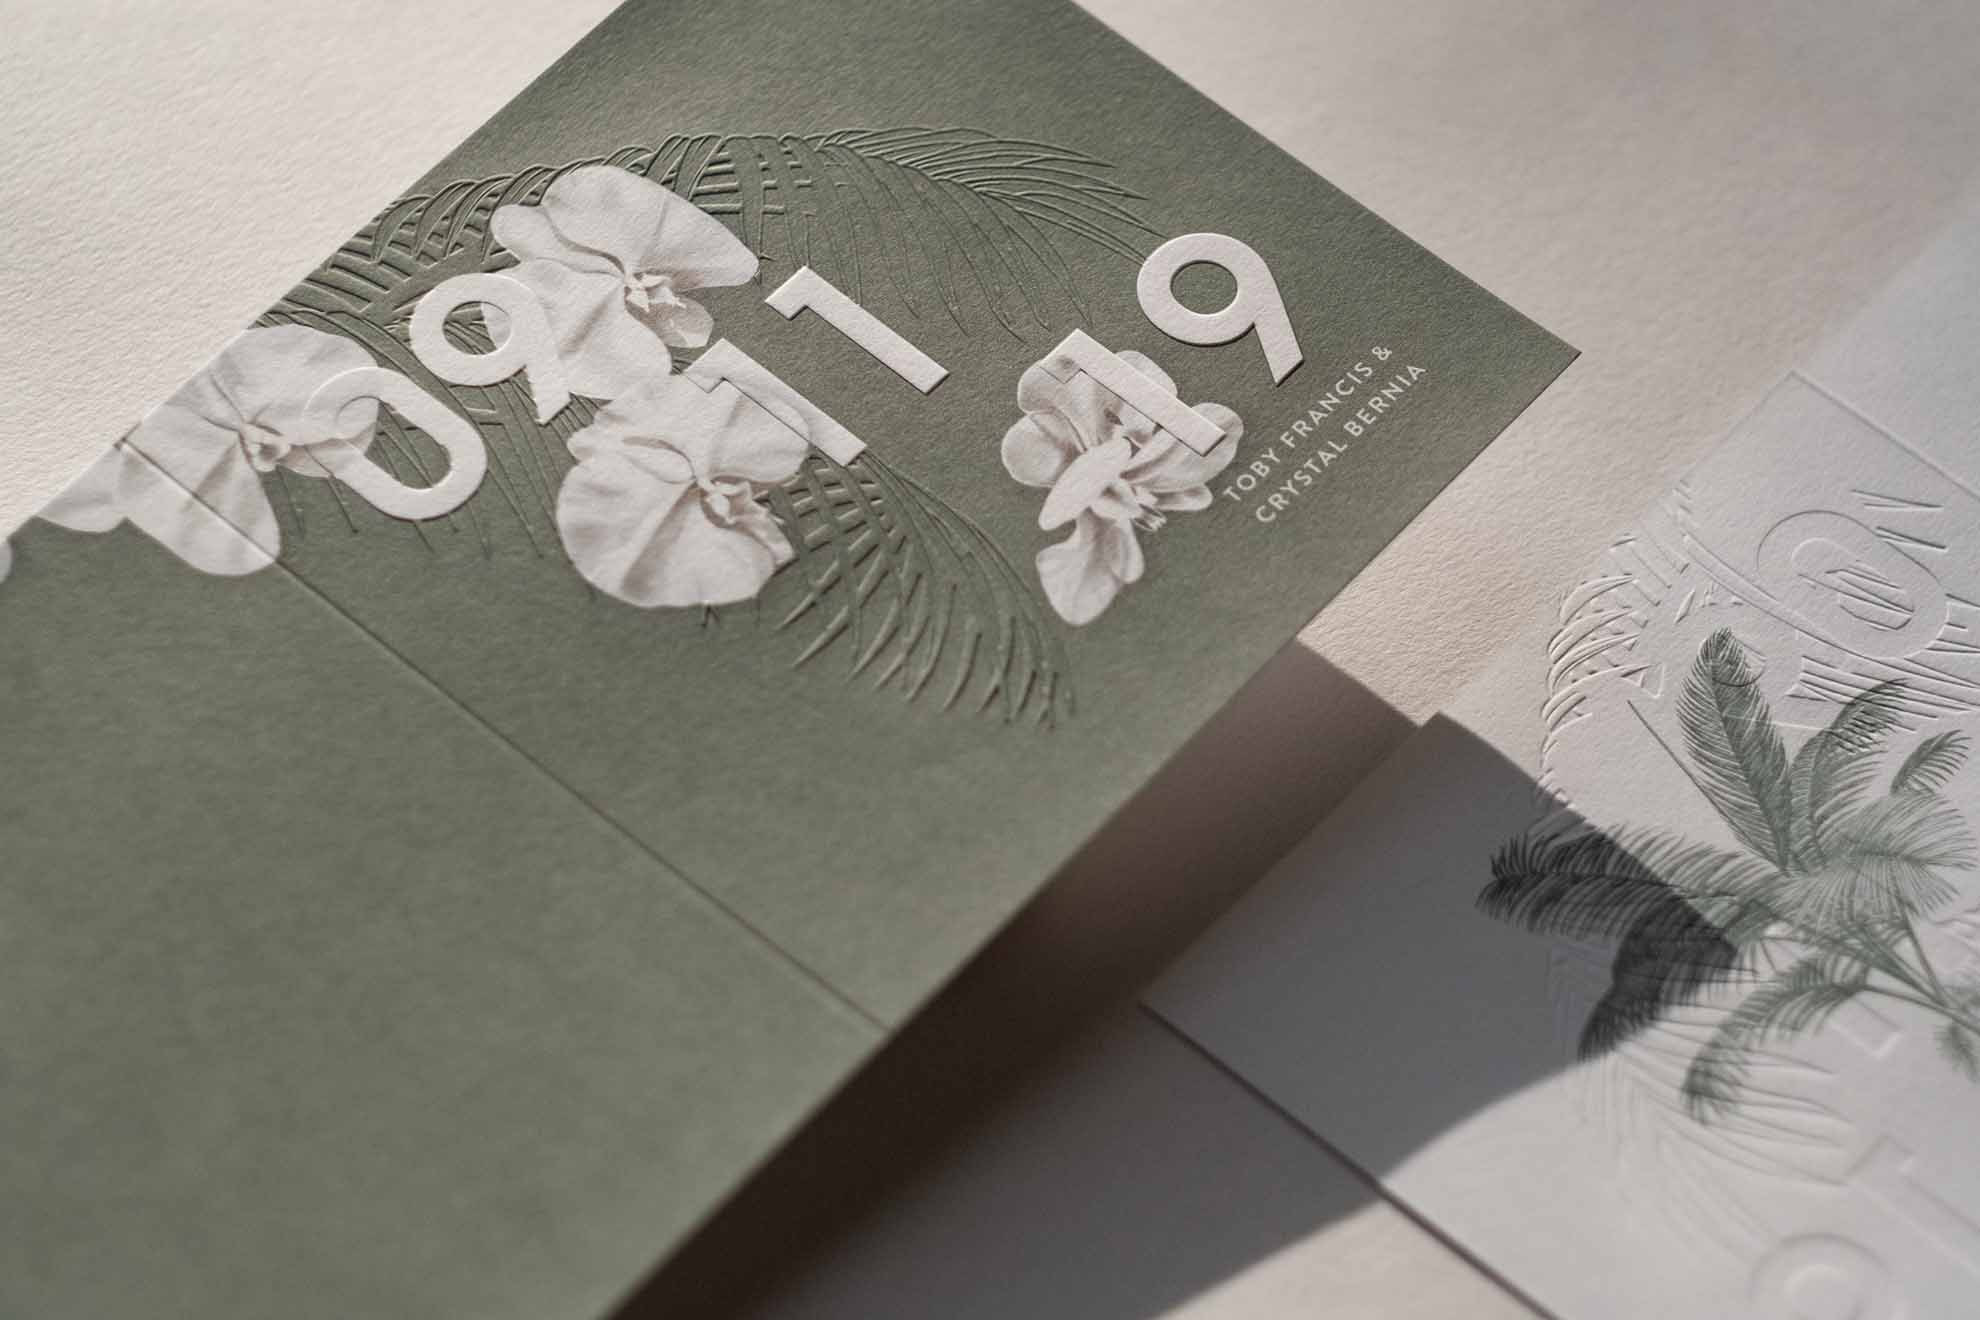 Stitch Press modern letterpress for LGBT+ same-sex wedding and engagement stationery, invitaions Melbourne Victoria Dancing With Her